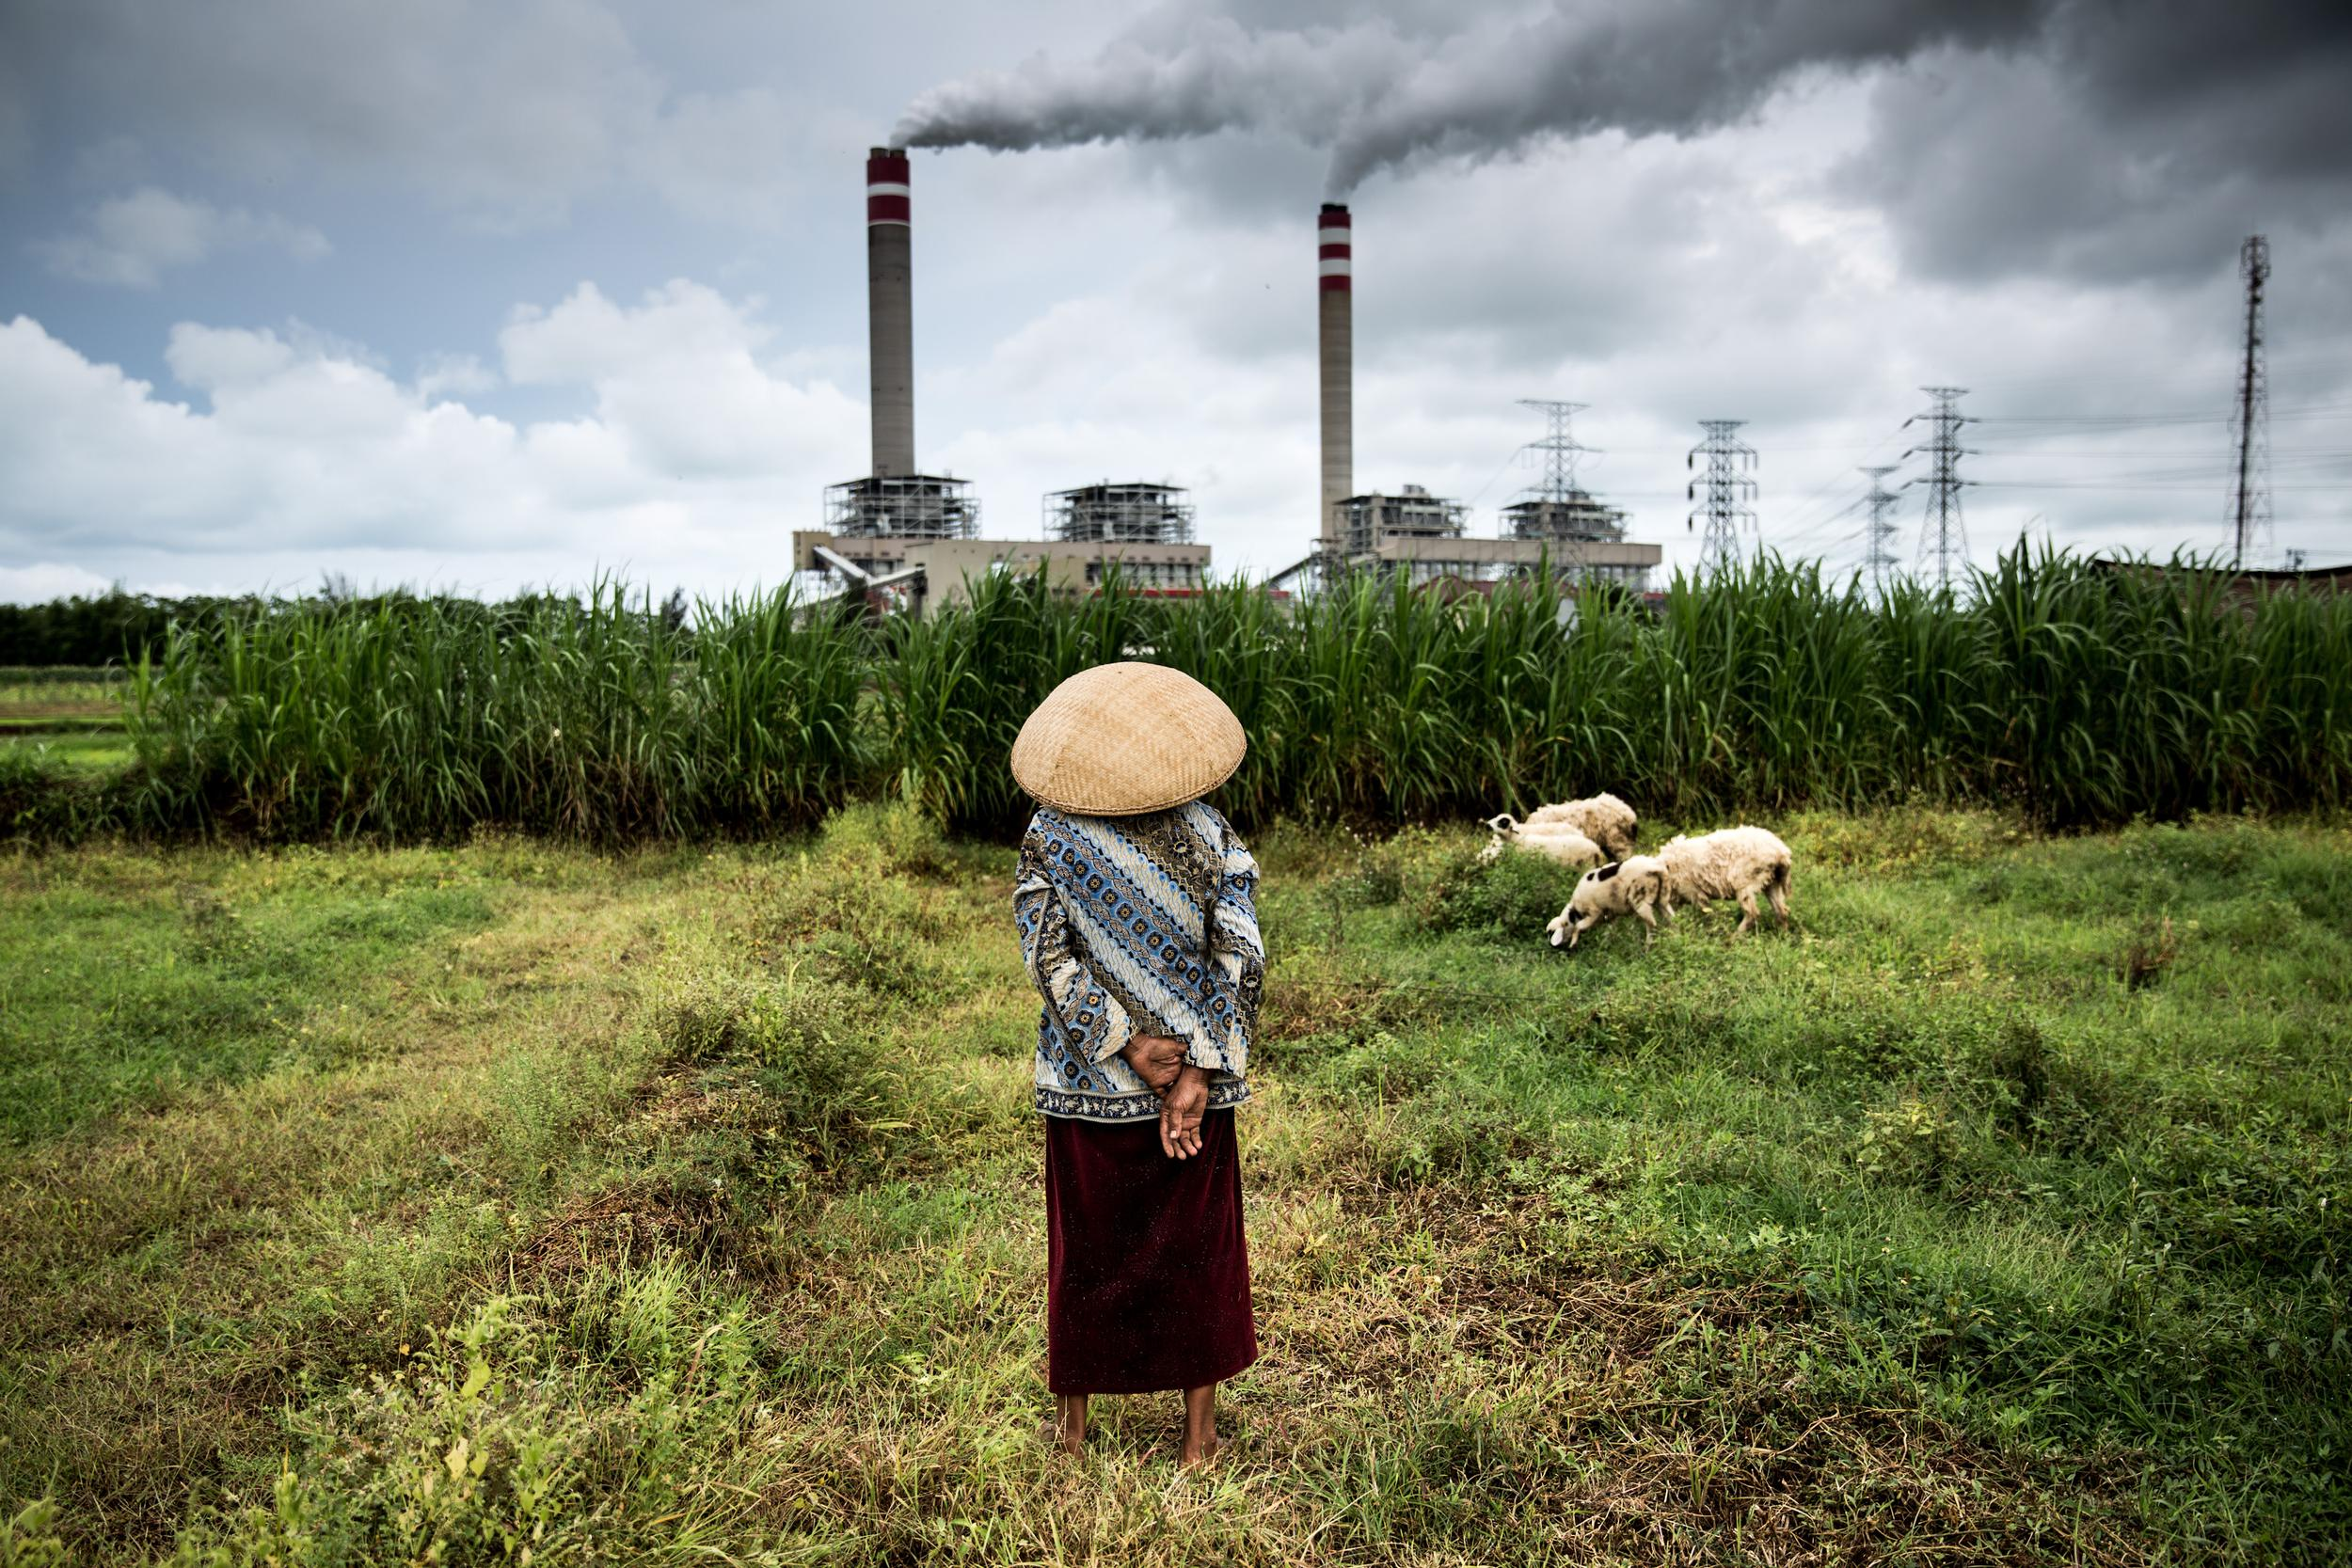 indonesian woman looking at coal power plant